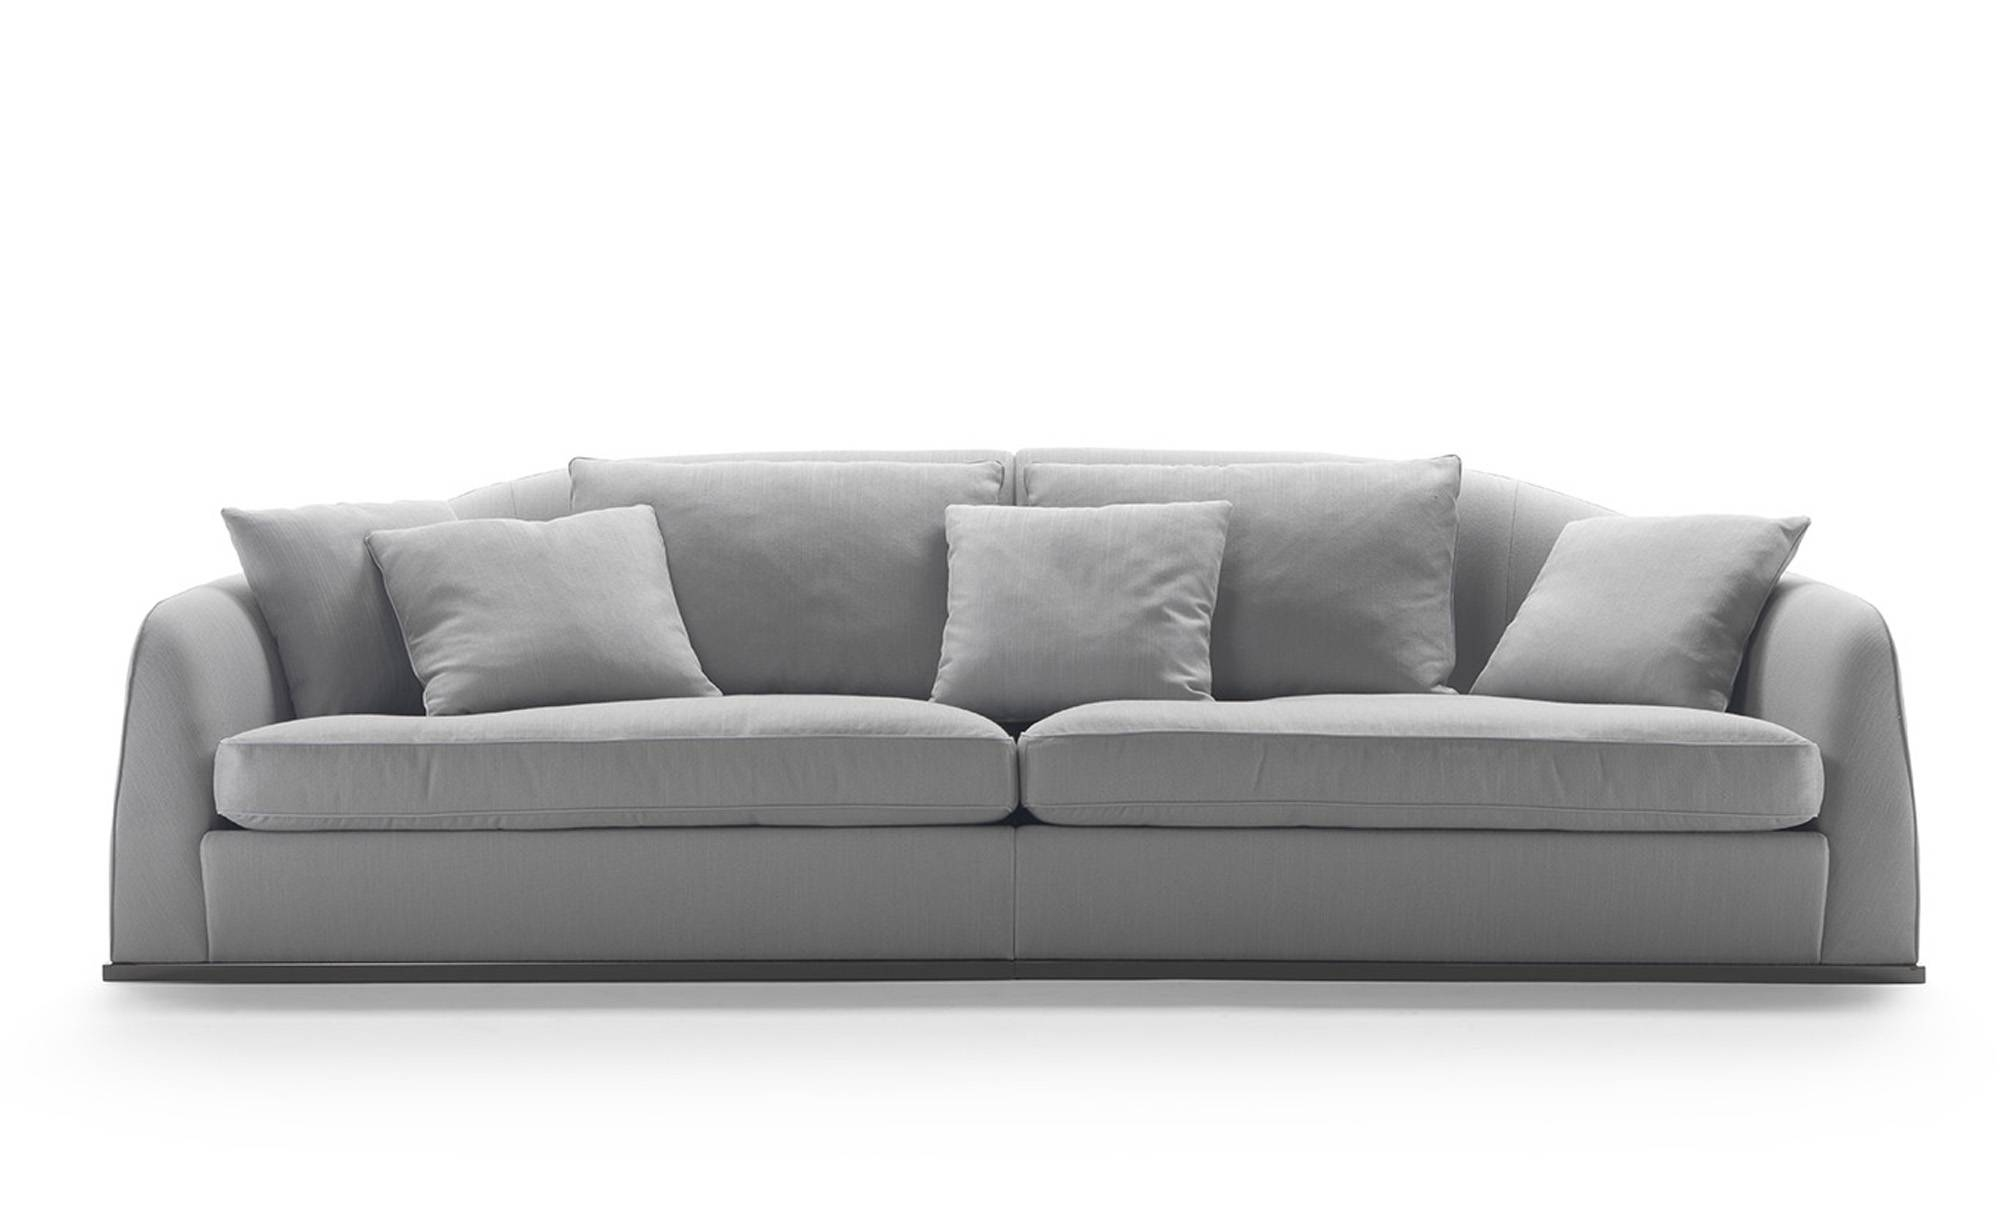 Flexform Mood Furniture - Fanuli Furniture with Flexform Sofas (Image 11 of 25)